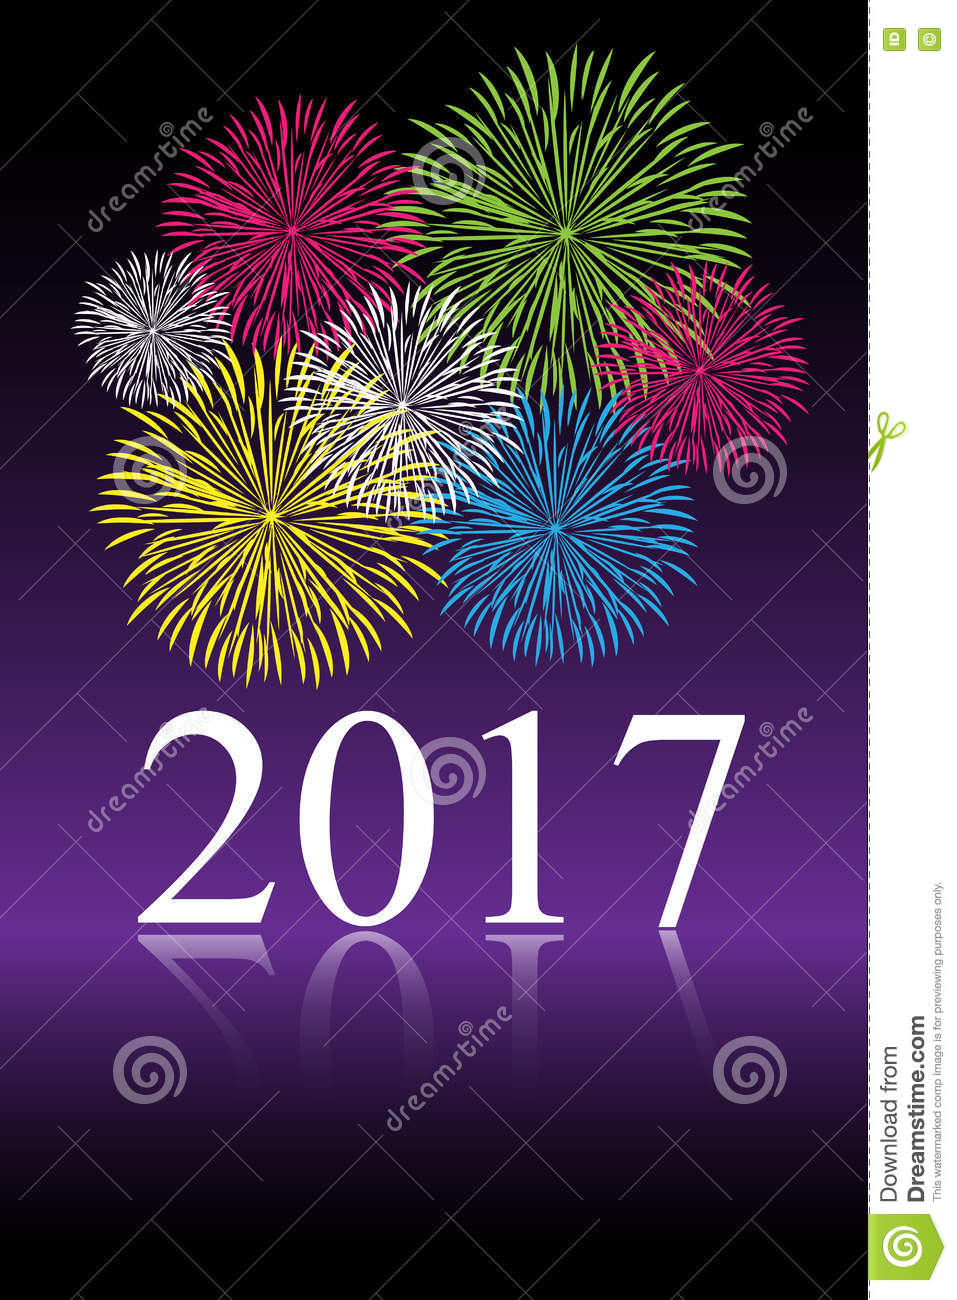 2017 new year celebration